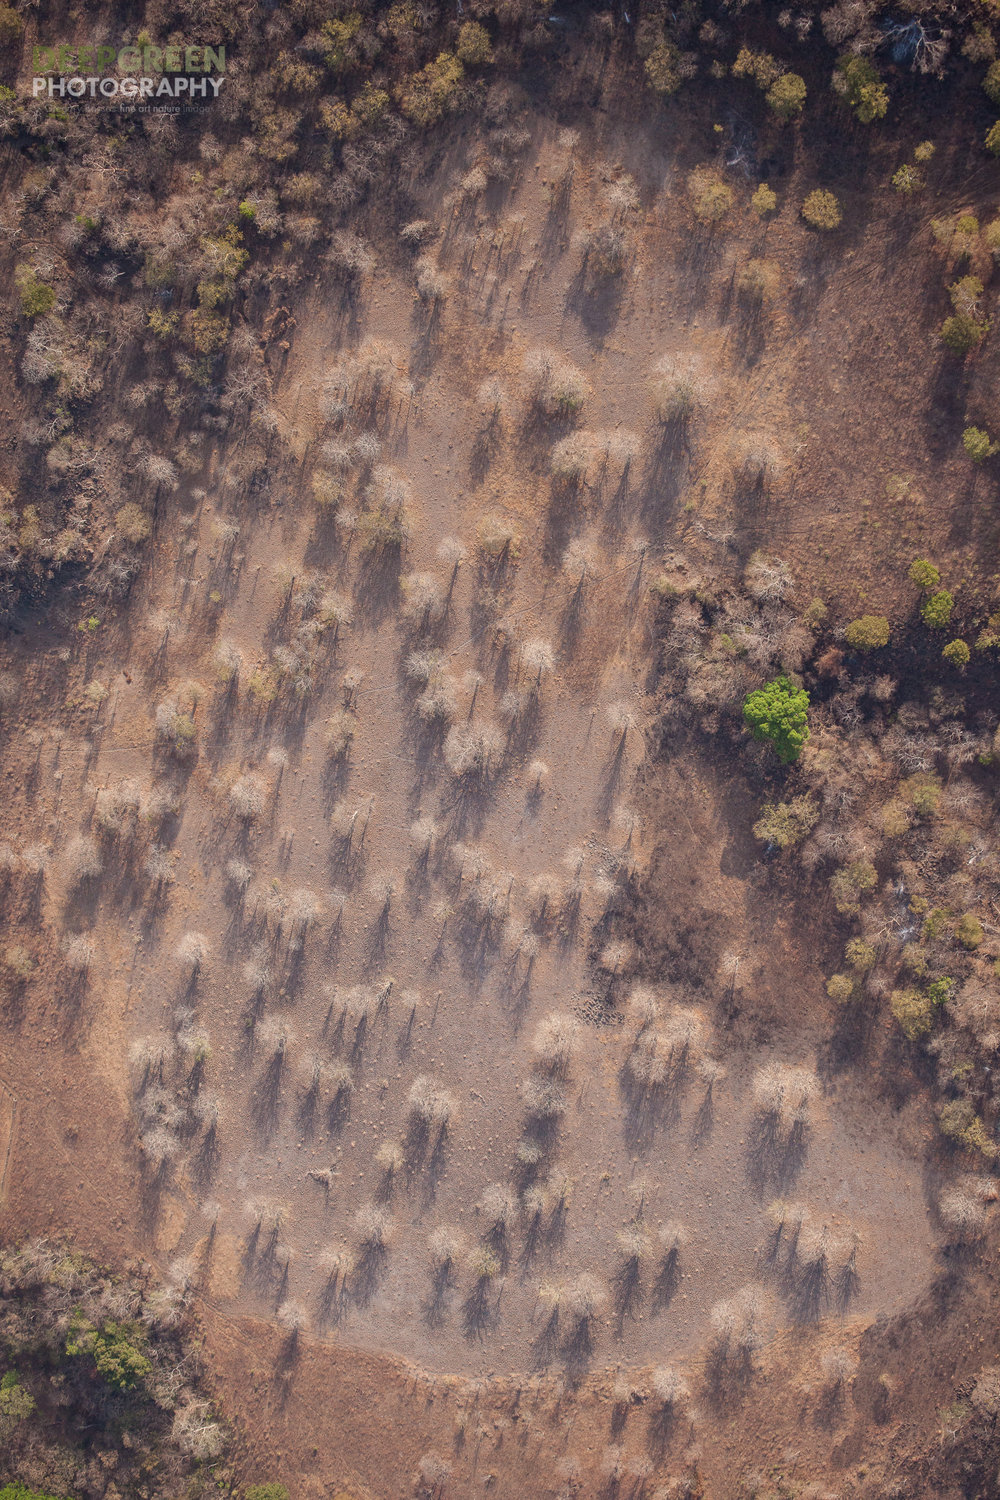 Decades of deforestation have left many areas of Costa Rica's Guanacaste in a semi-desert state